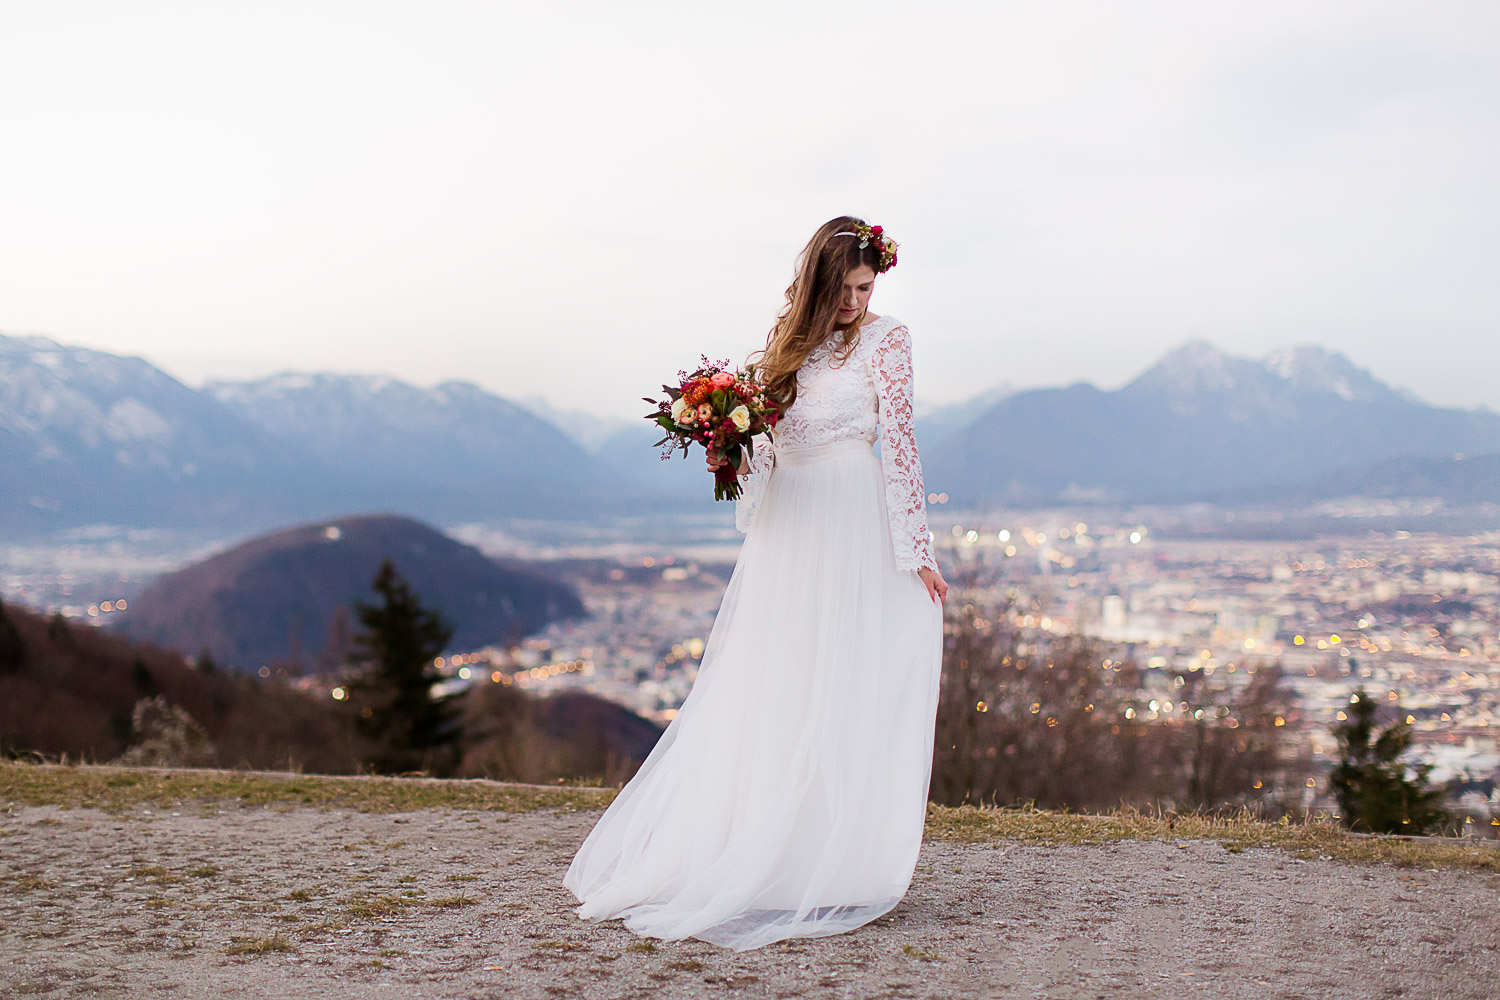 Heiraten location dax lueg